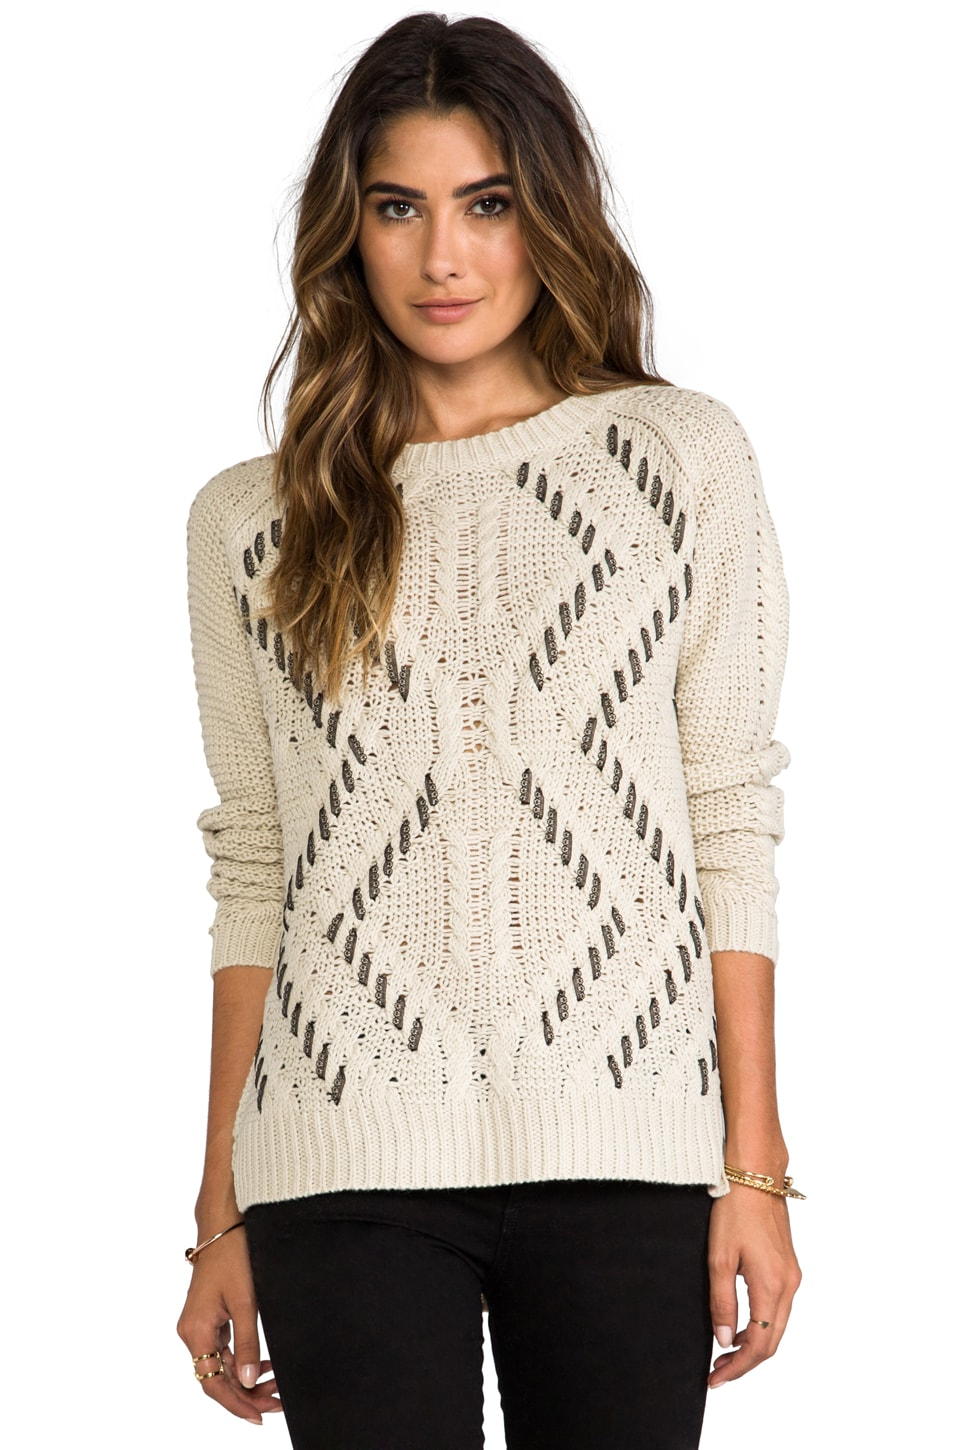 HEARTLOOM Emery Sweater in Stone